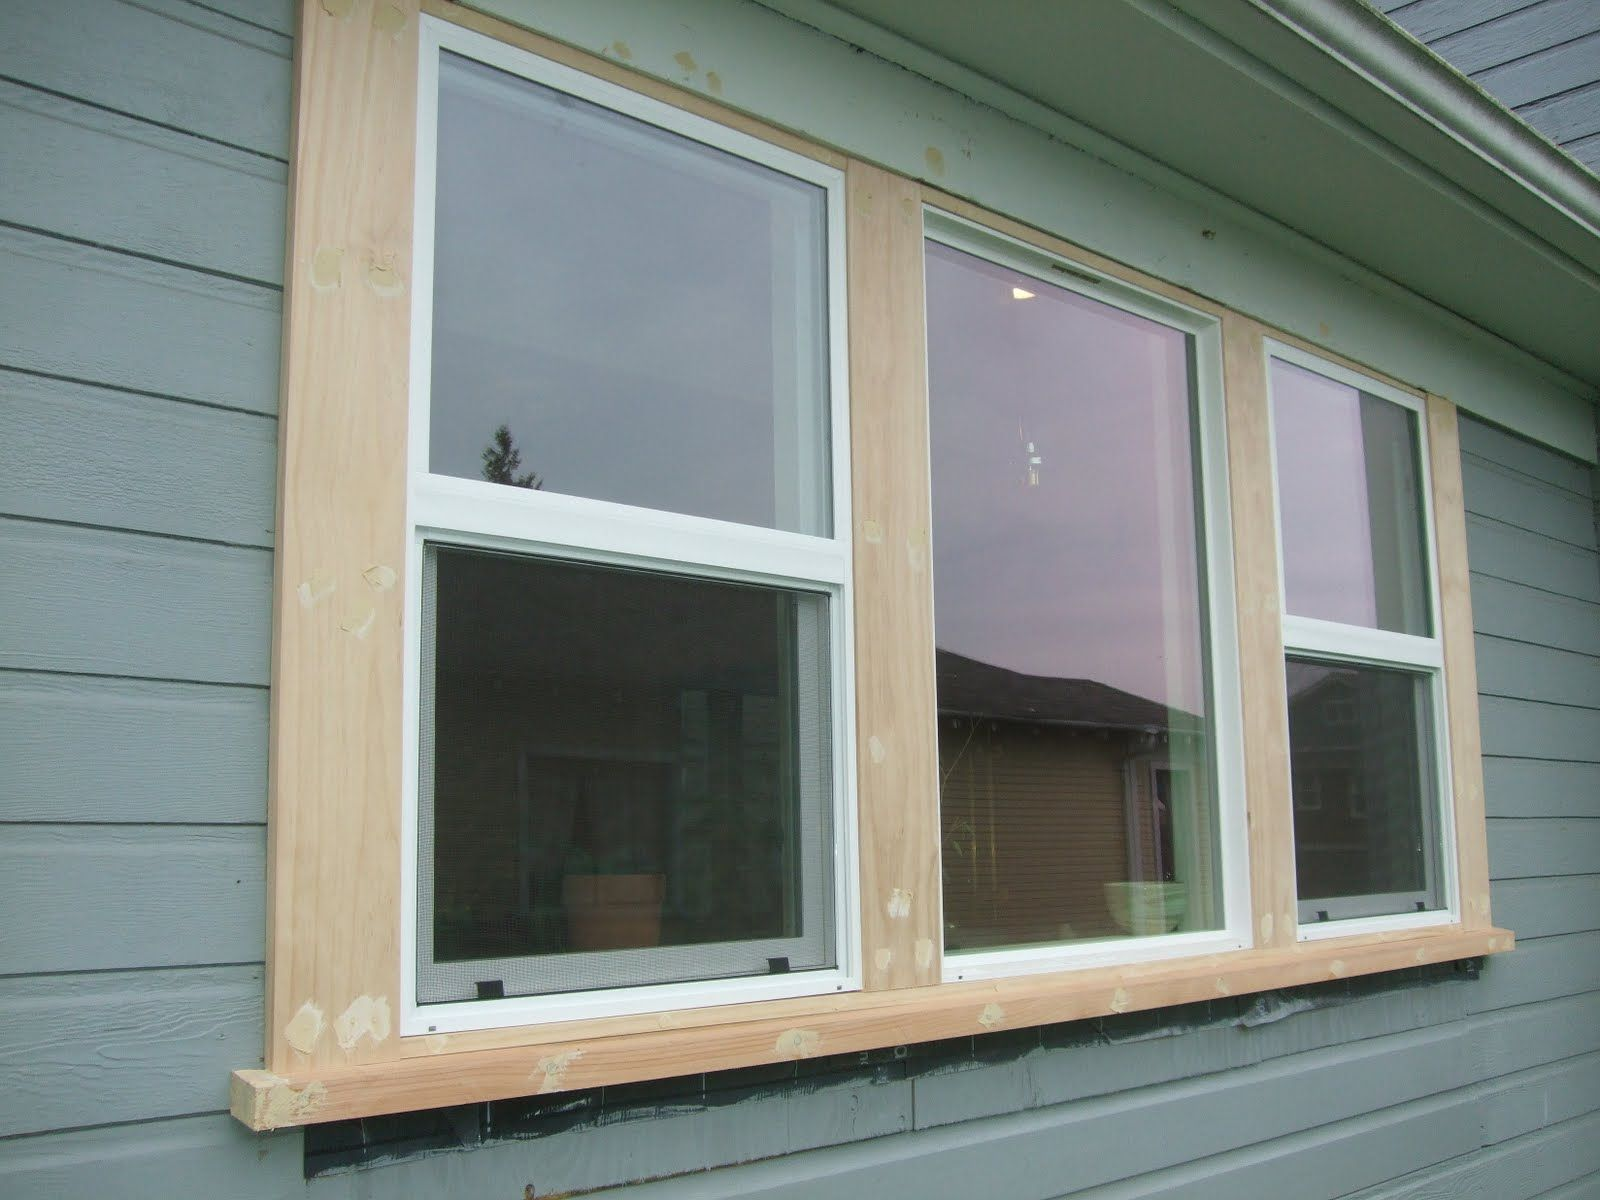 How to Install Exterior Trim Around a Window | Exterior window ...